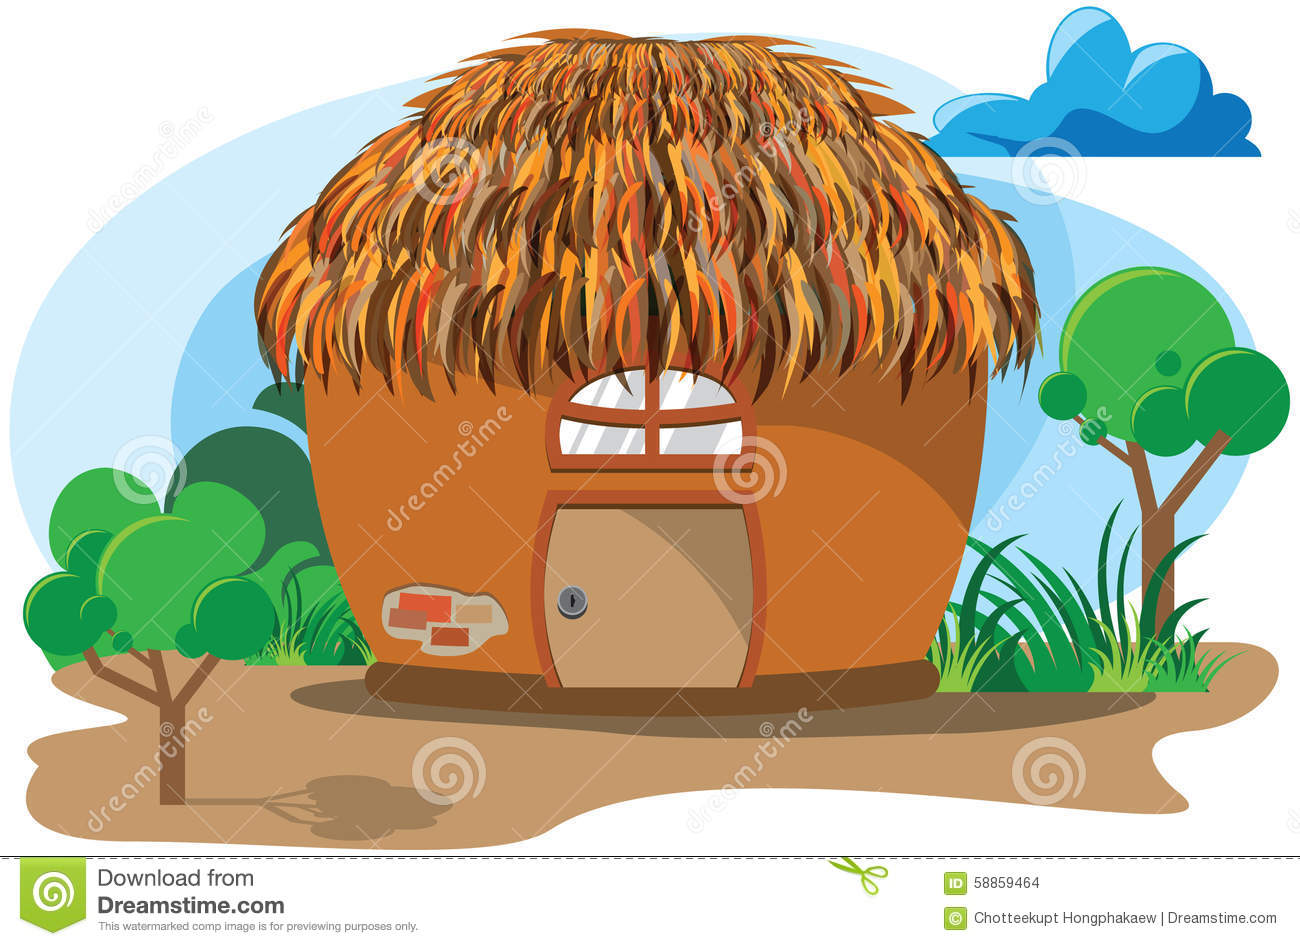 Clay Hut Cartoon Stock Vector Illustration Of Clay Village 58859464